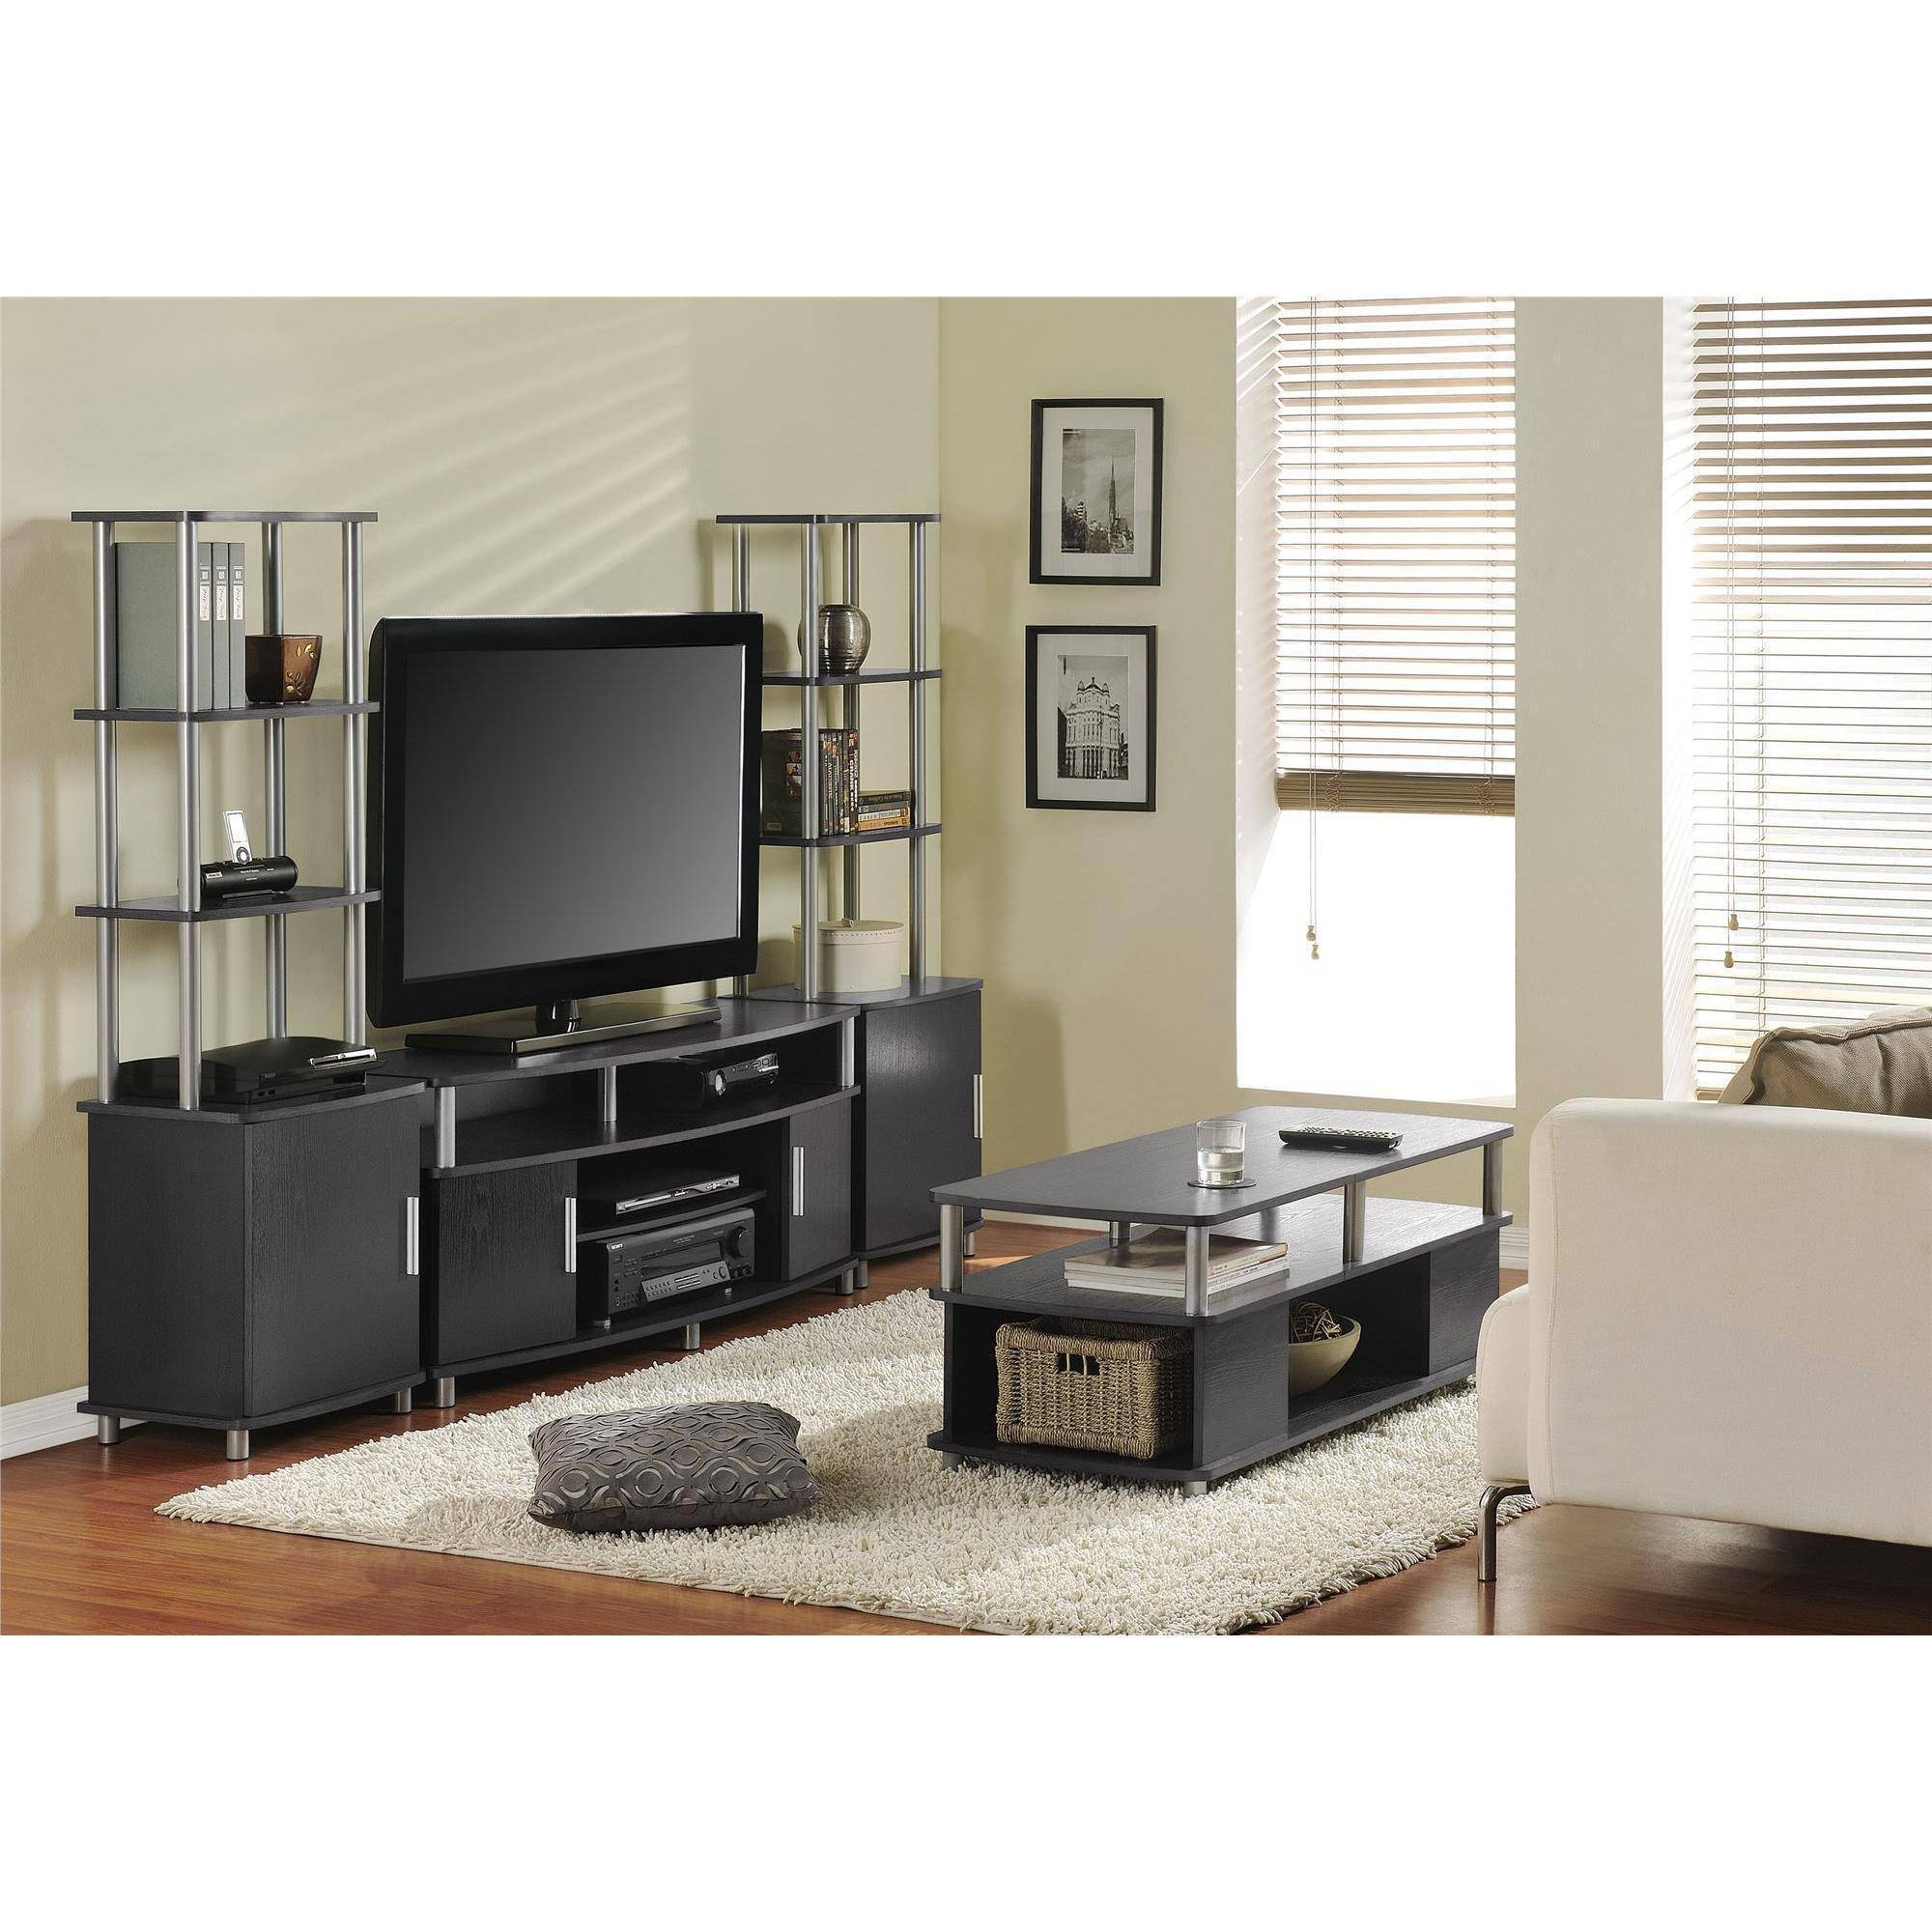 Ameriwood Home Carson Coffee Table, Espresso/silver - Walmart for Tv Stand Coffee Table Sets (Image 1 of 30)